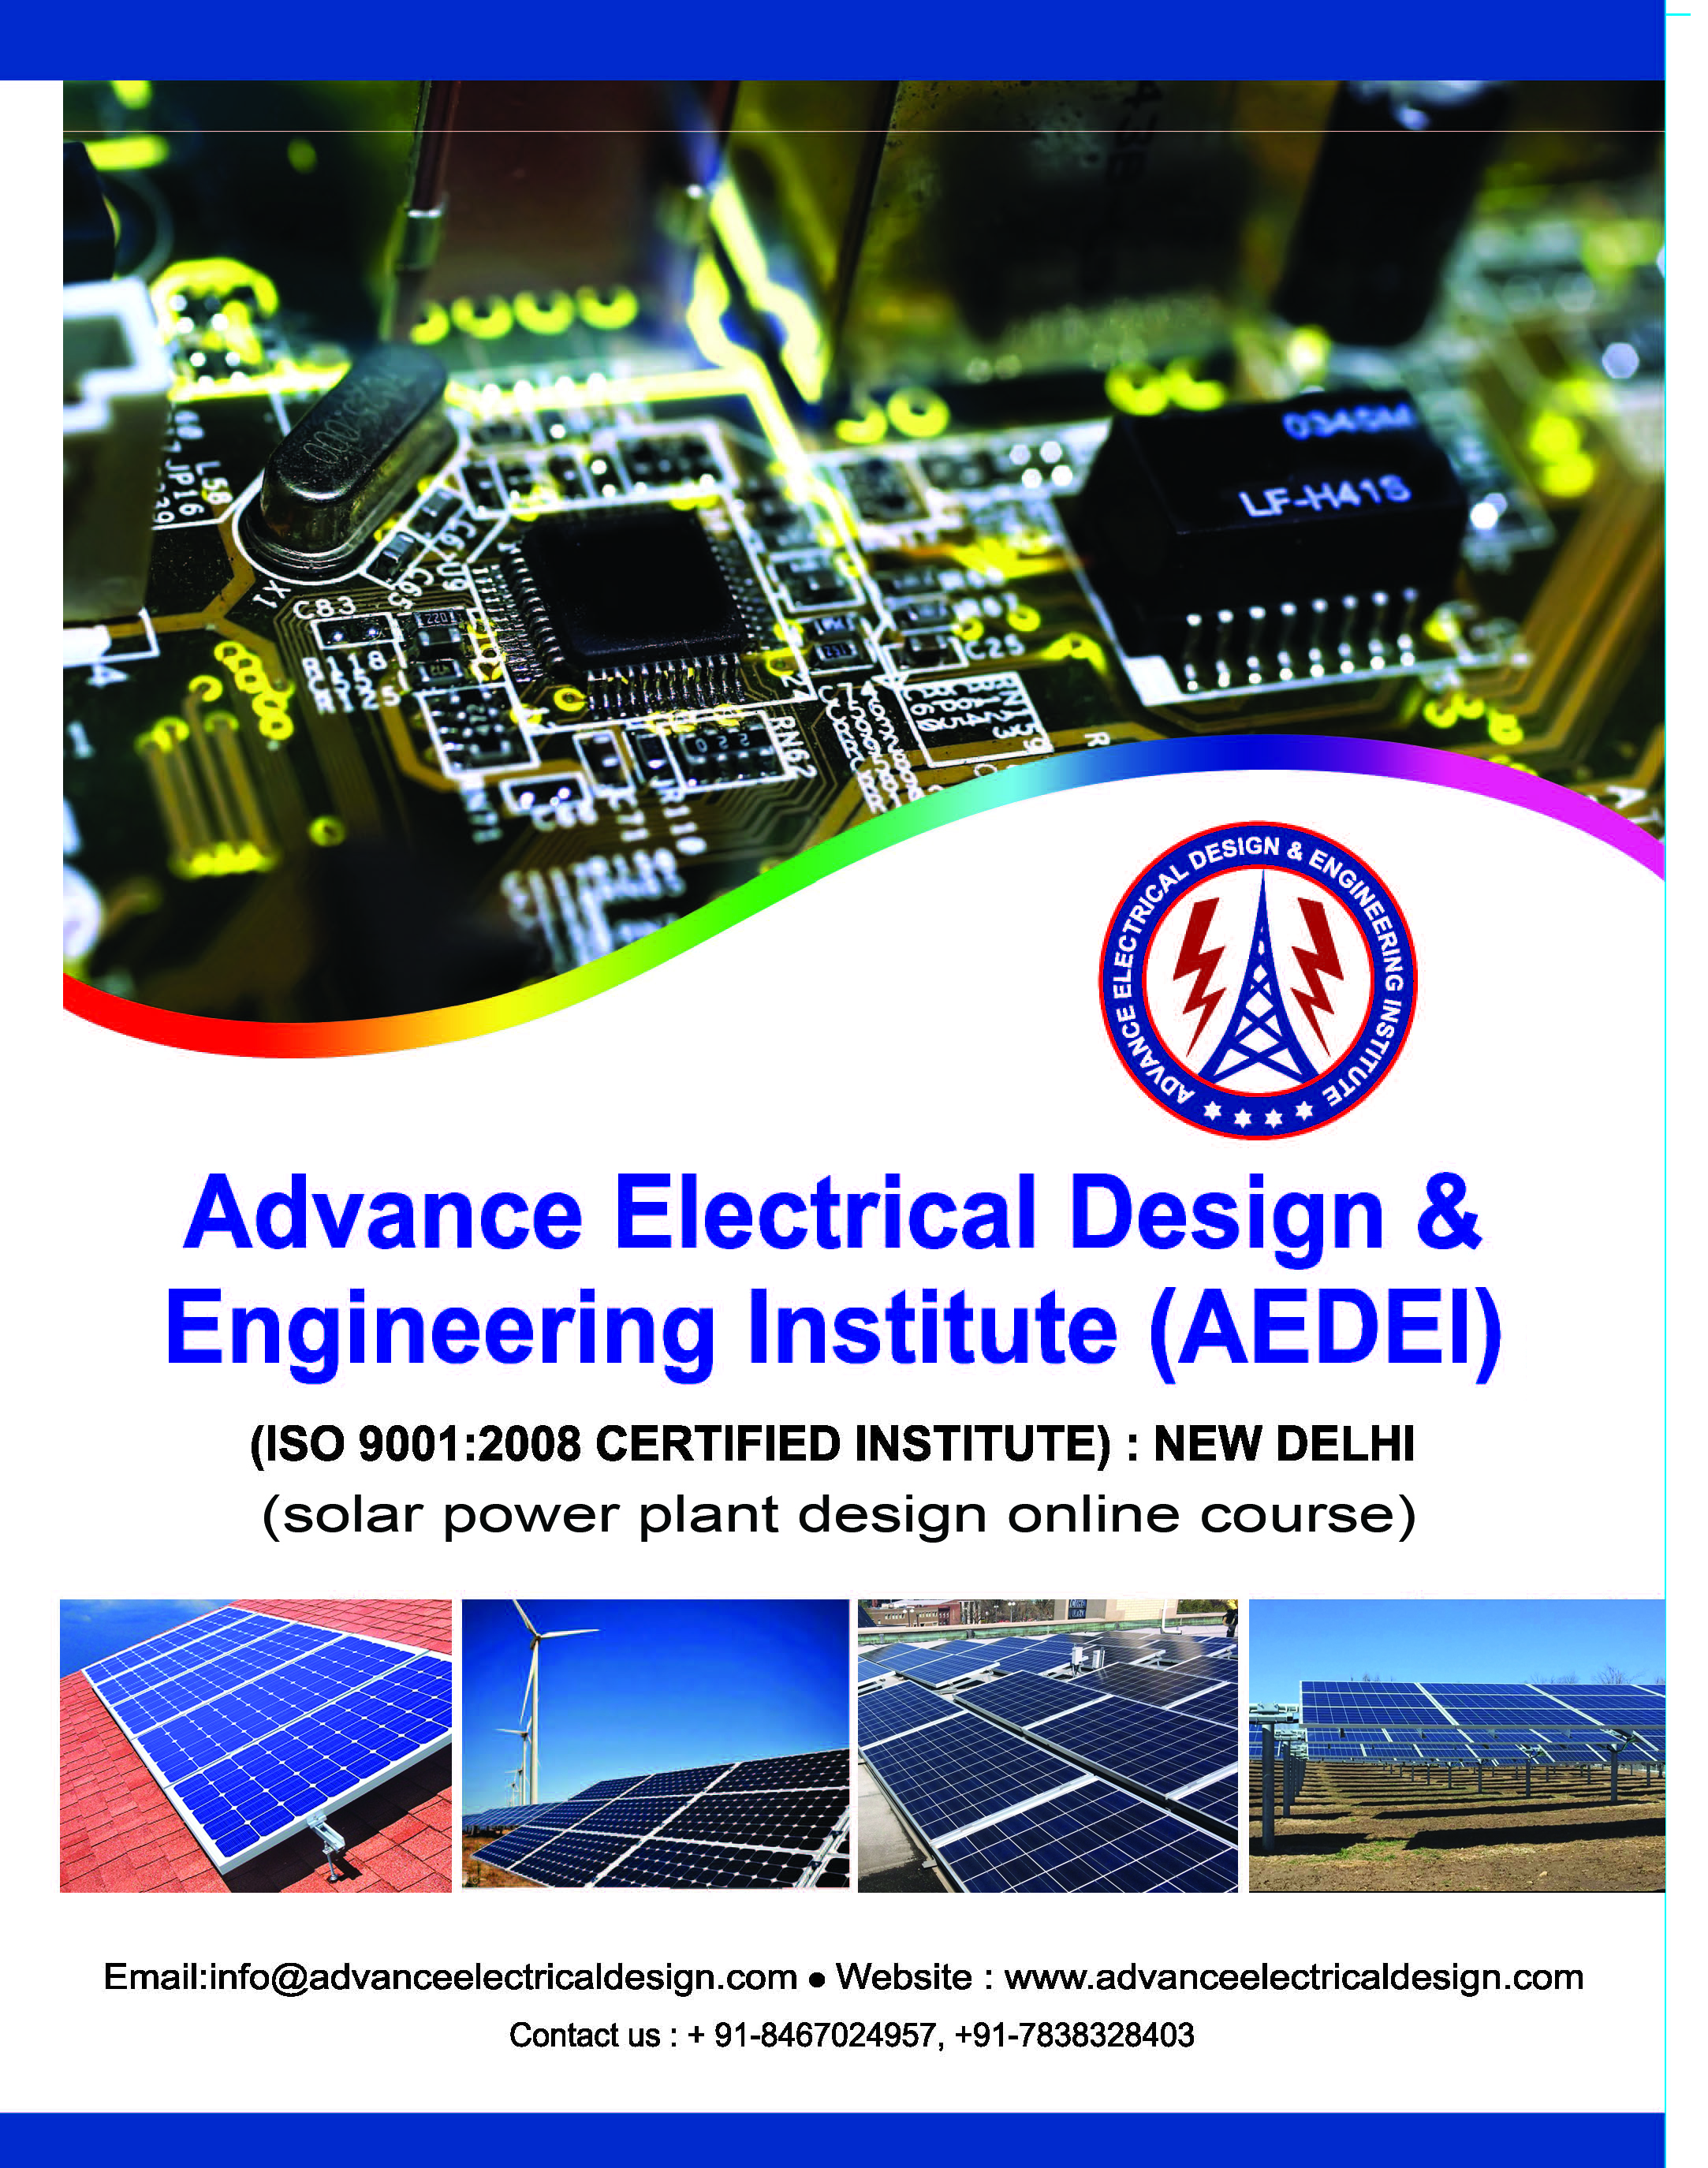 Solar design online course training